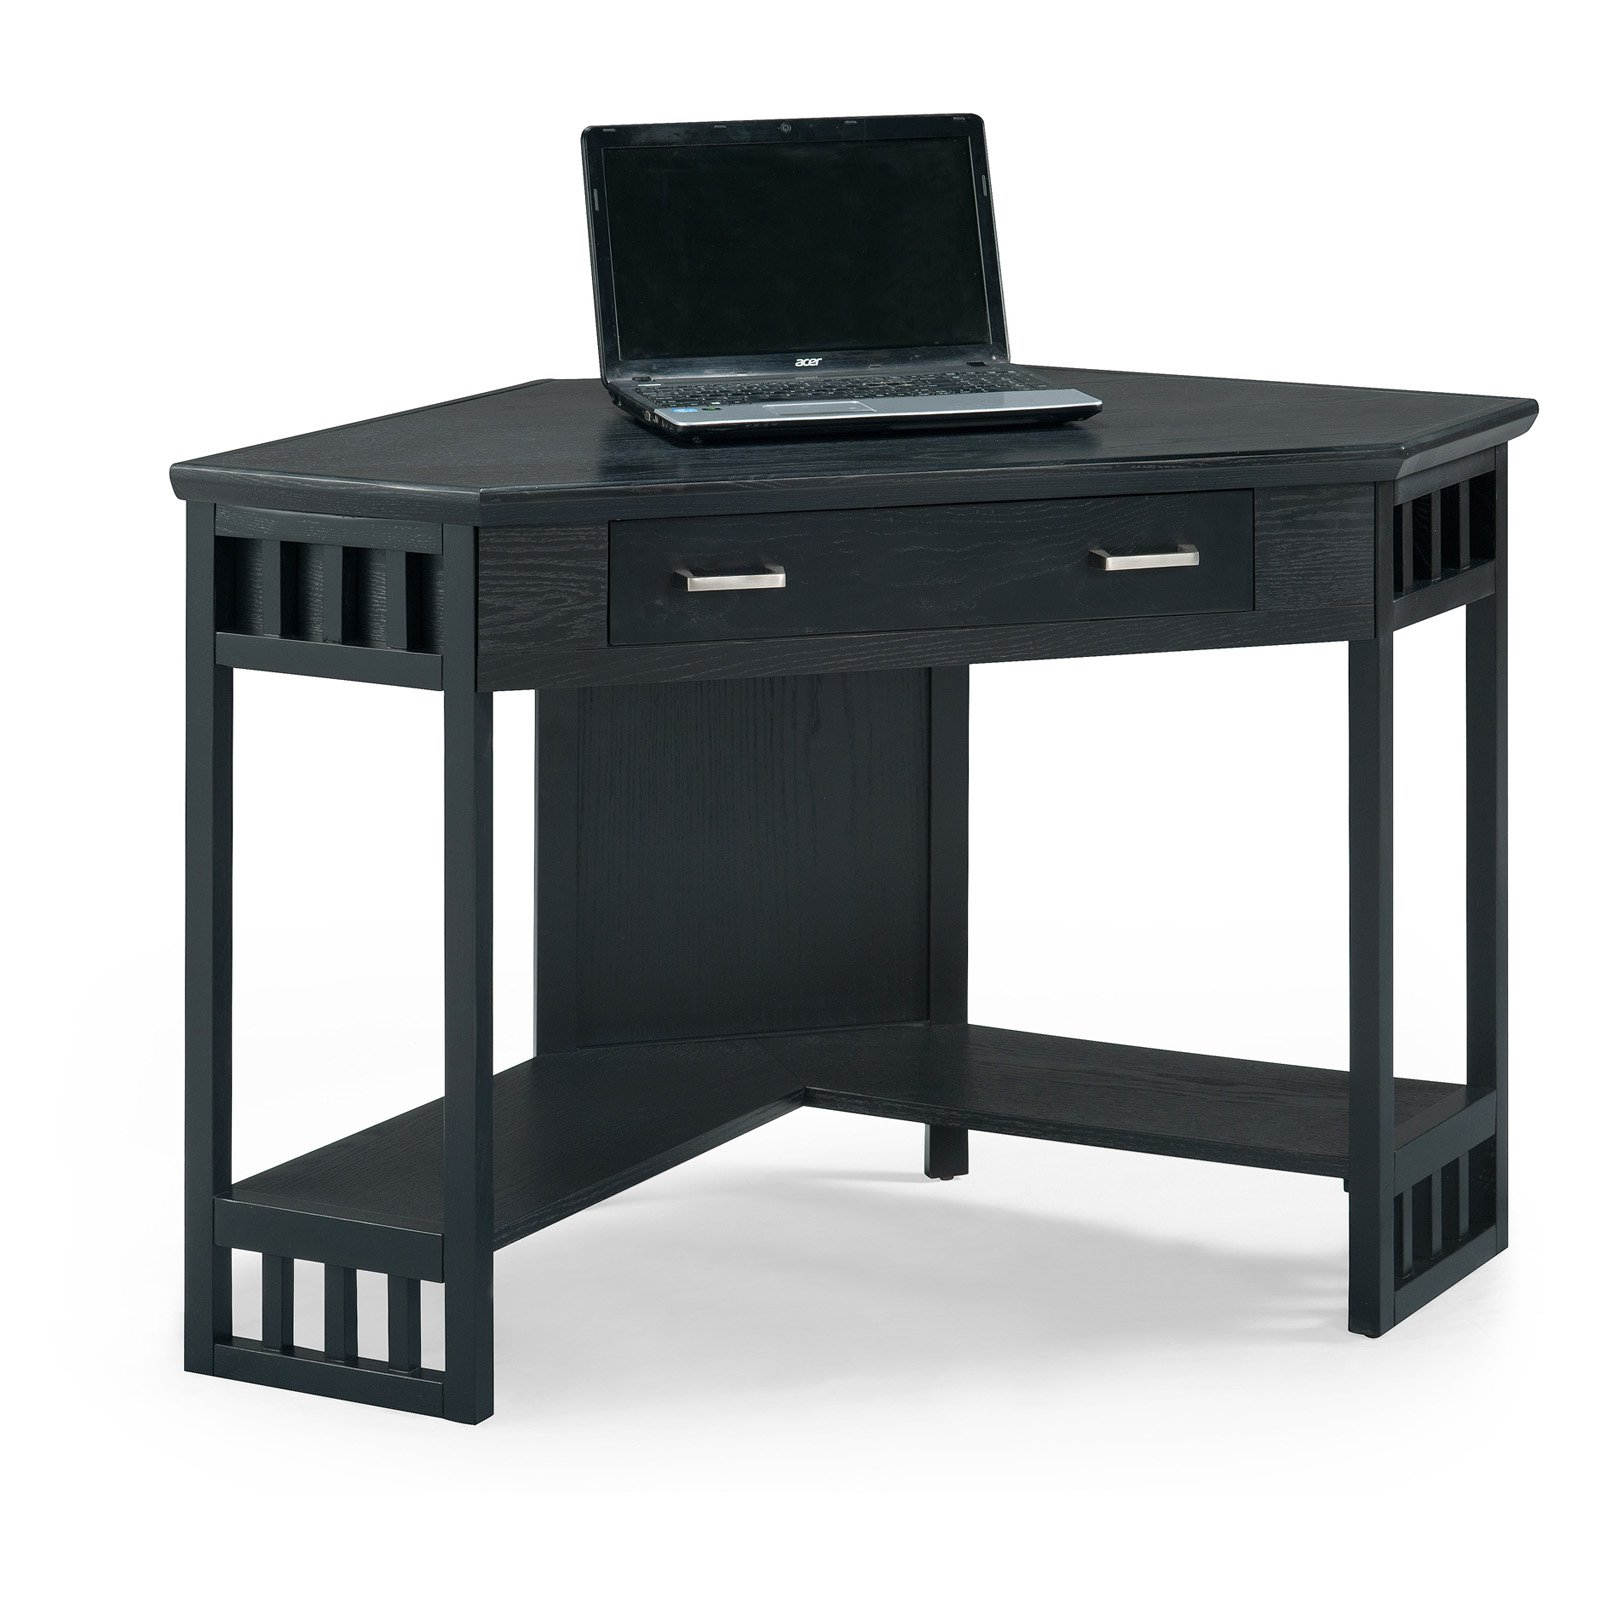 Leick 48 in. Corner Computer Writing Desk Black by Leick Furniture